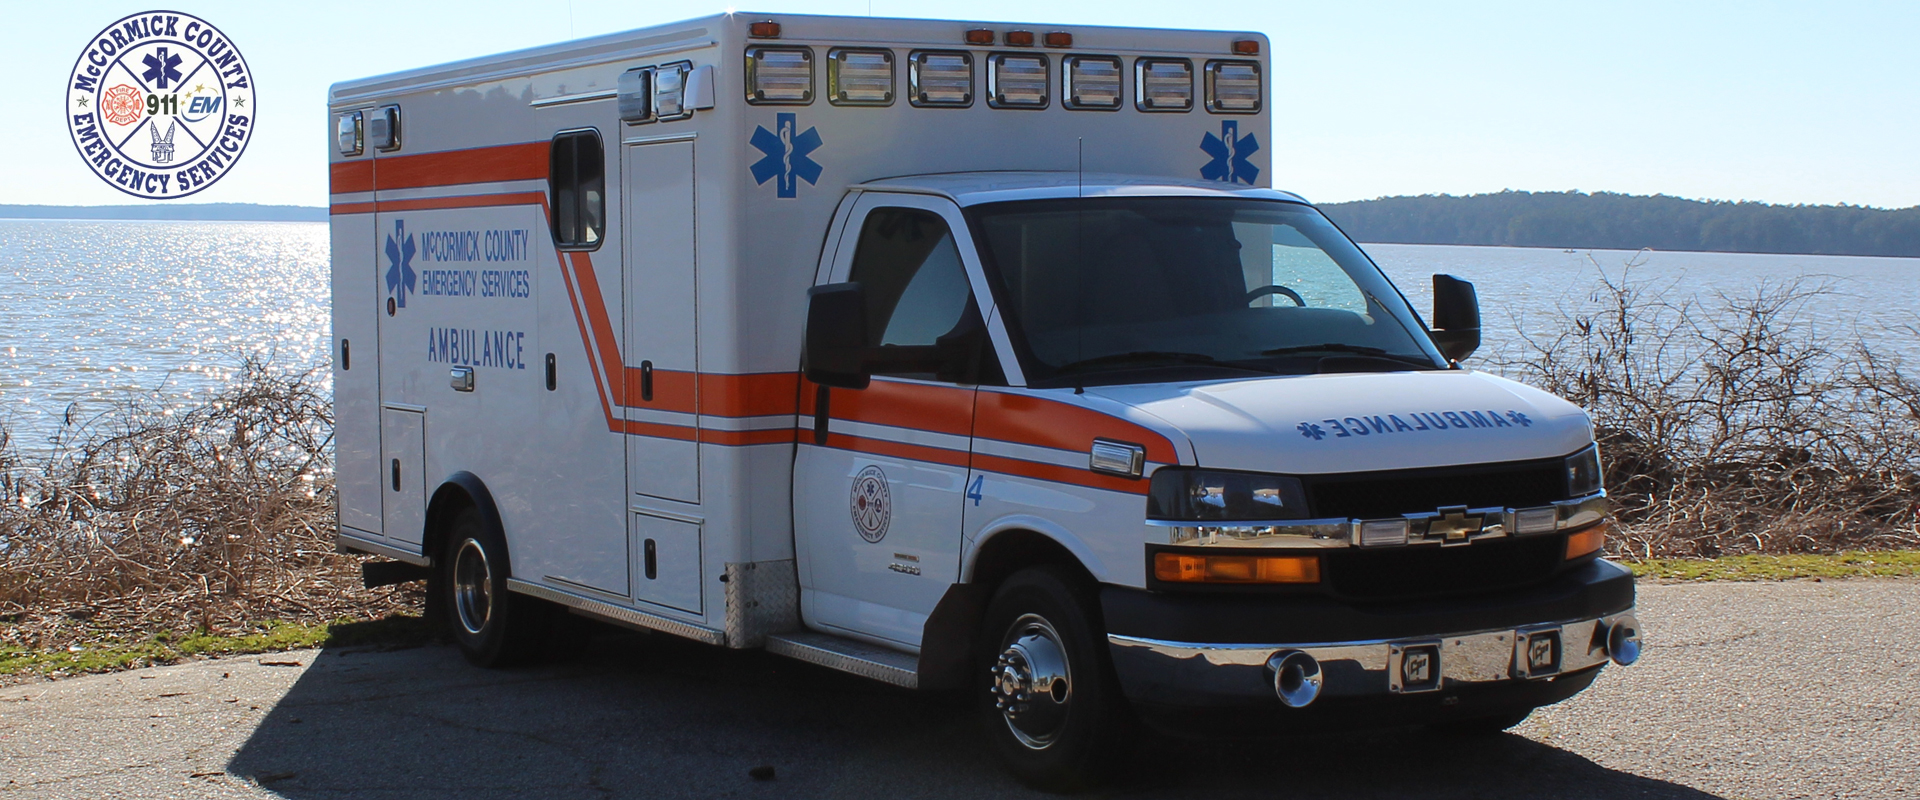 McCormick County Emergency Services